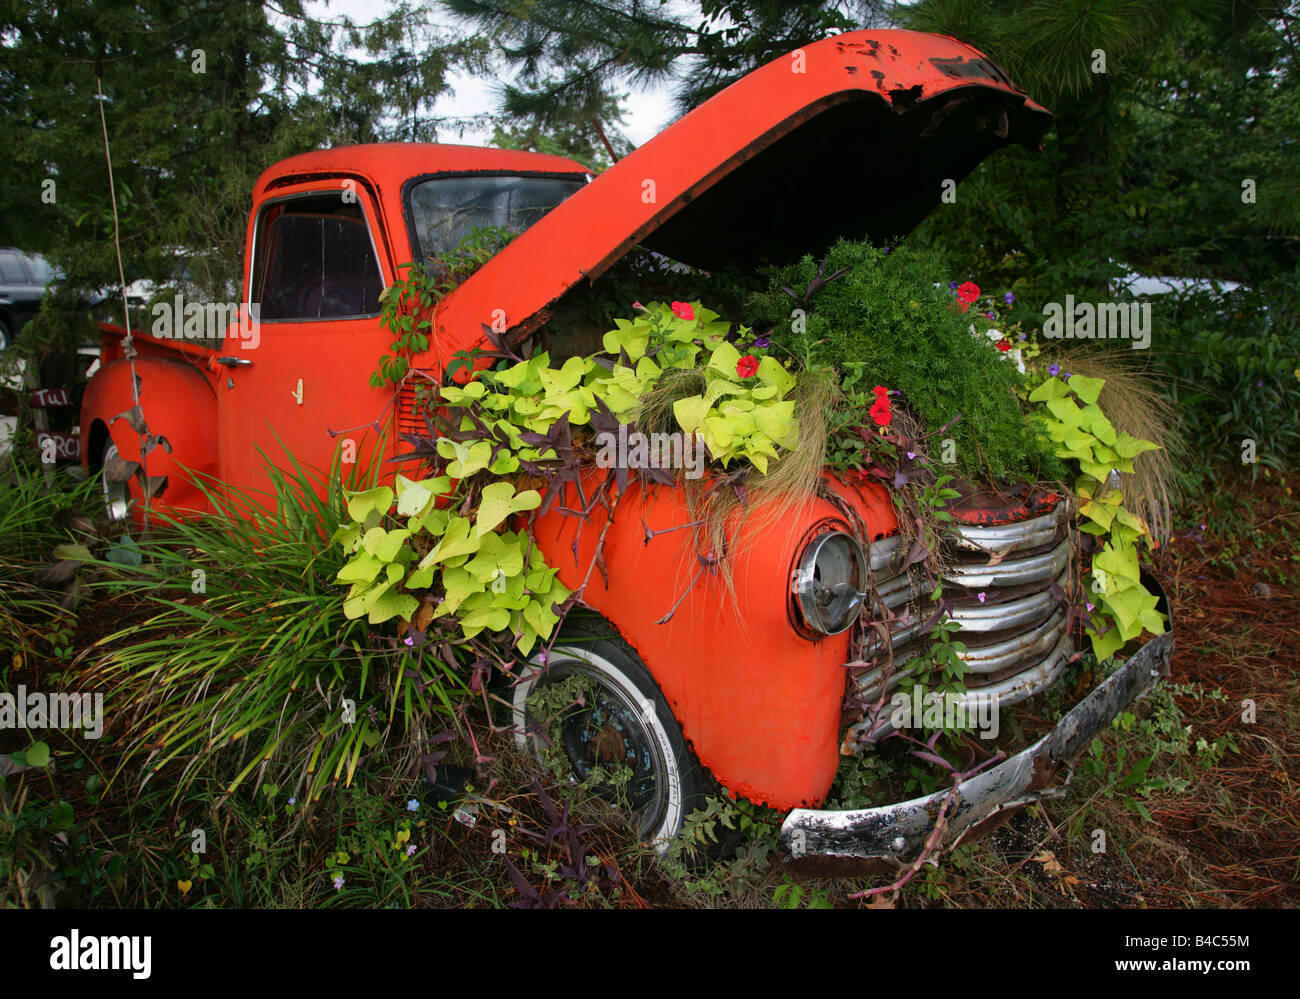 A vintage pick up truck used as a planter along the roadside in ...